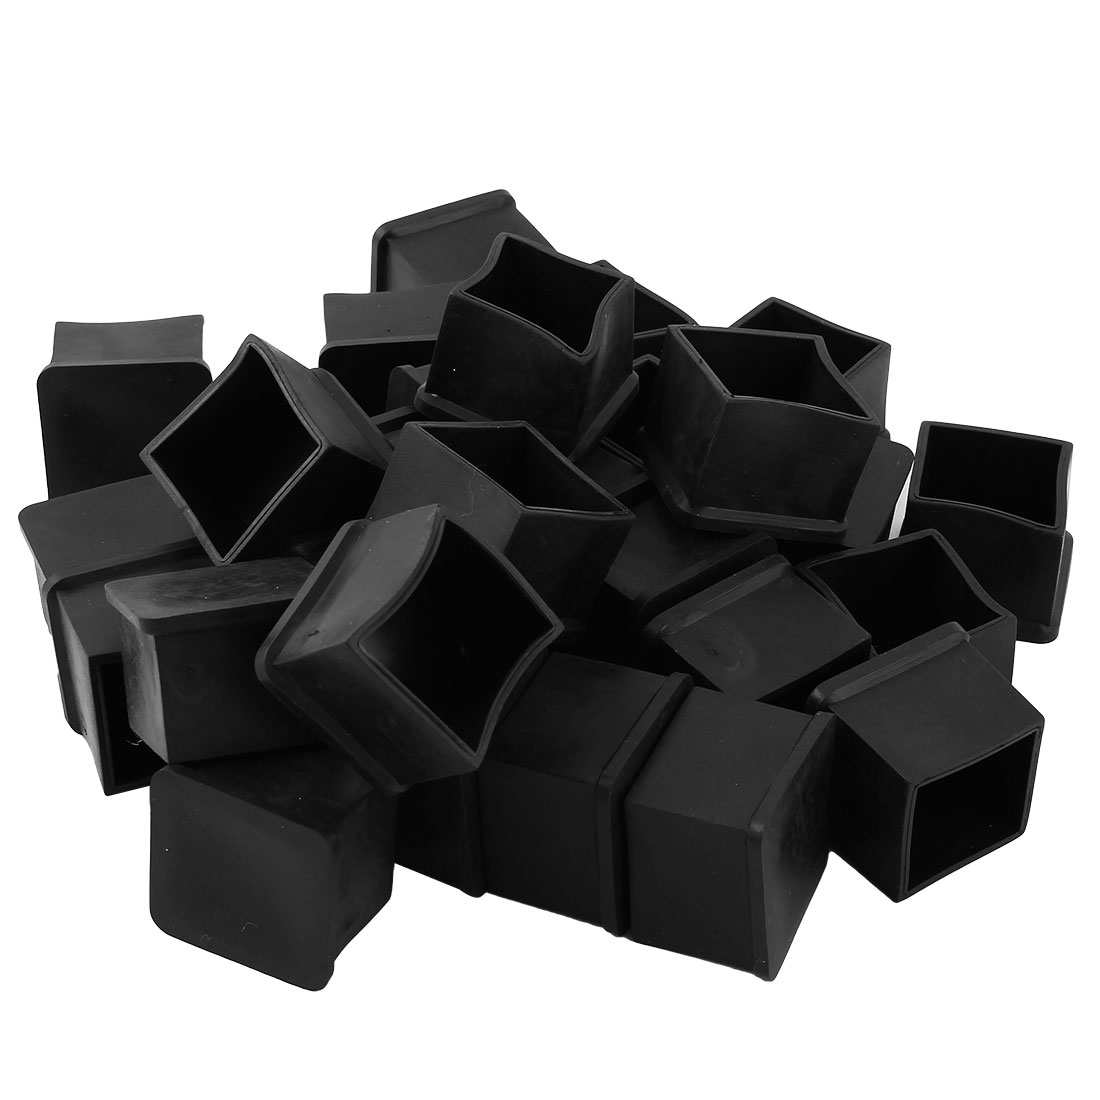 Office Rubber Furniture Foot Floor Protector Cover Black 30mm x 30mm 29 Pcs